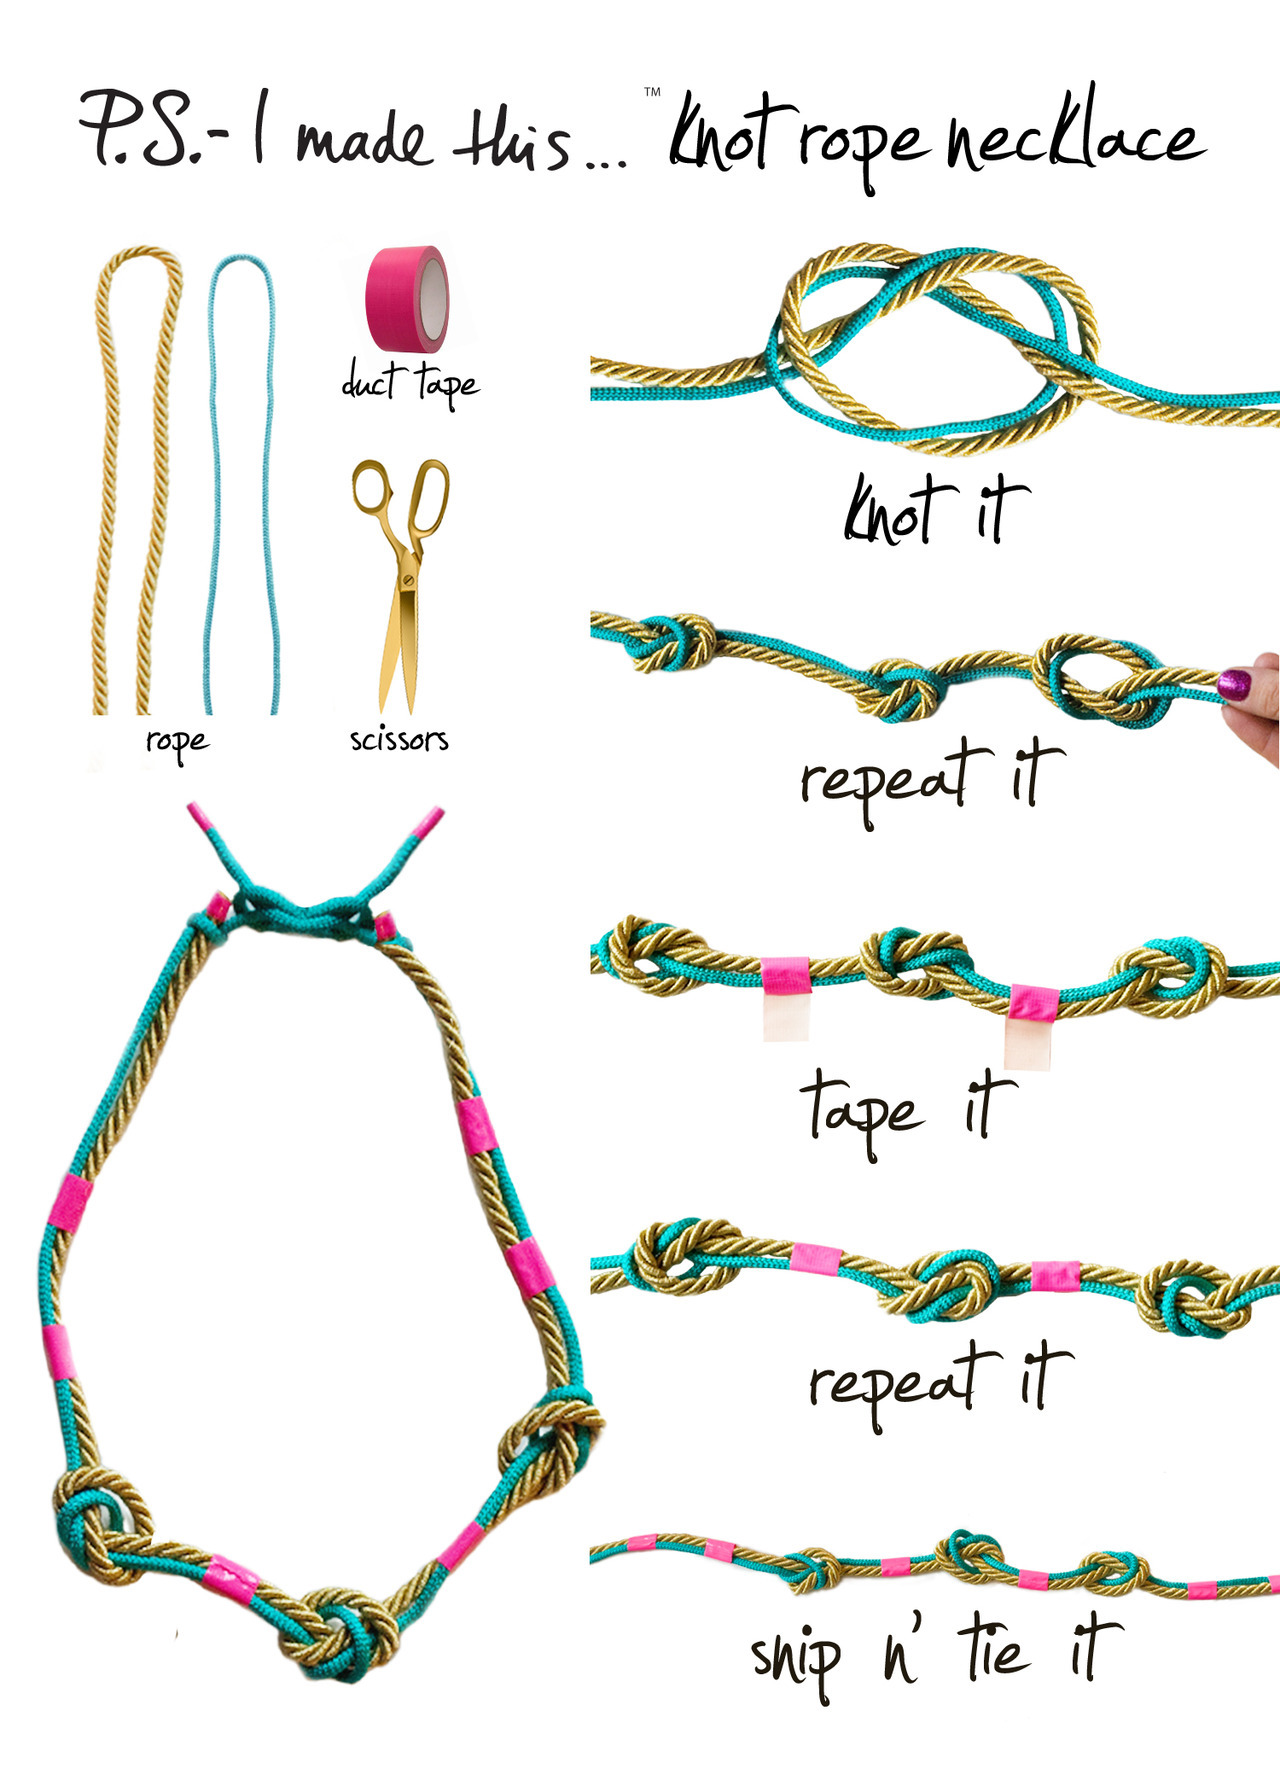 Jump for rope! The sailor's knot symbolizes a perfect marriage between form and function.  Crafty mariners not only used essential roping skills to safely set sail, they also made bracelets to show off their skills. These handcrafted wares were believed to bring good fortune, and were often given as gifts to their sweethearts upon returning to port.  Seafaring style is making major waves this season, with designers like Mara Hoffman and Holst + Lee adding a twist on tradition by layering in bright pops of color and statement hardware.  Tie one on with this DIY that will have you shouting Crafts Ahoy!To create, cut pieces of colorful rope into 1-yard. Gather both pieces, fold in half and create a flat knot in the center.   Add 2 flat knots on either side of the middle knot.  Infuse a pop color with Duck Tape (P.S.- we love NEON!) by wrapping small pieces between each knot.  Add additional Duck Tape accents as you finish off the necklace.  Also use to keep the rope's ends from fraying.  Secure with a slip knot on the end and you're ready to set sail in style!  P.S.- Learn how to tie all sorts of rad knots HERE!